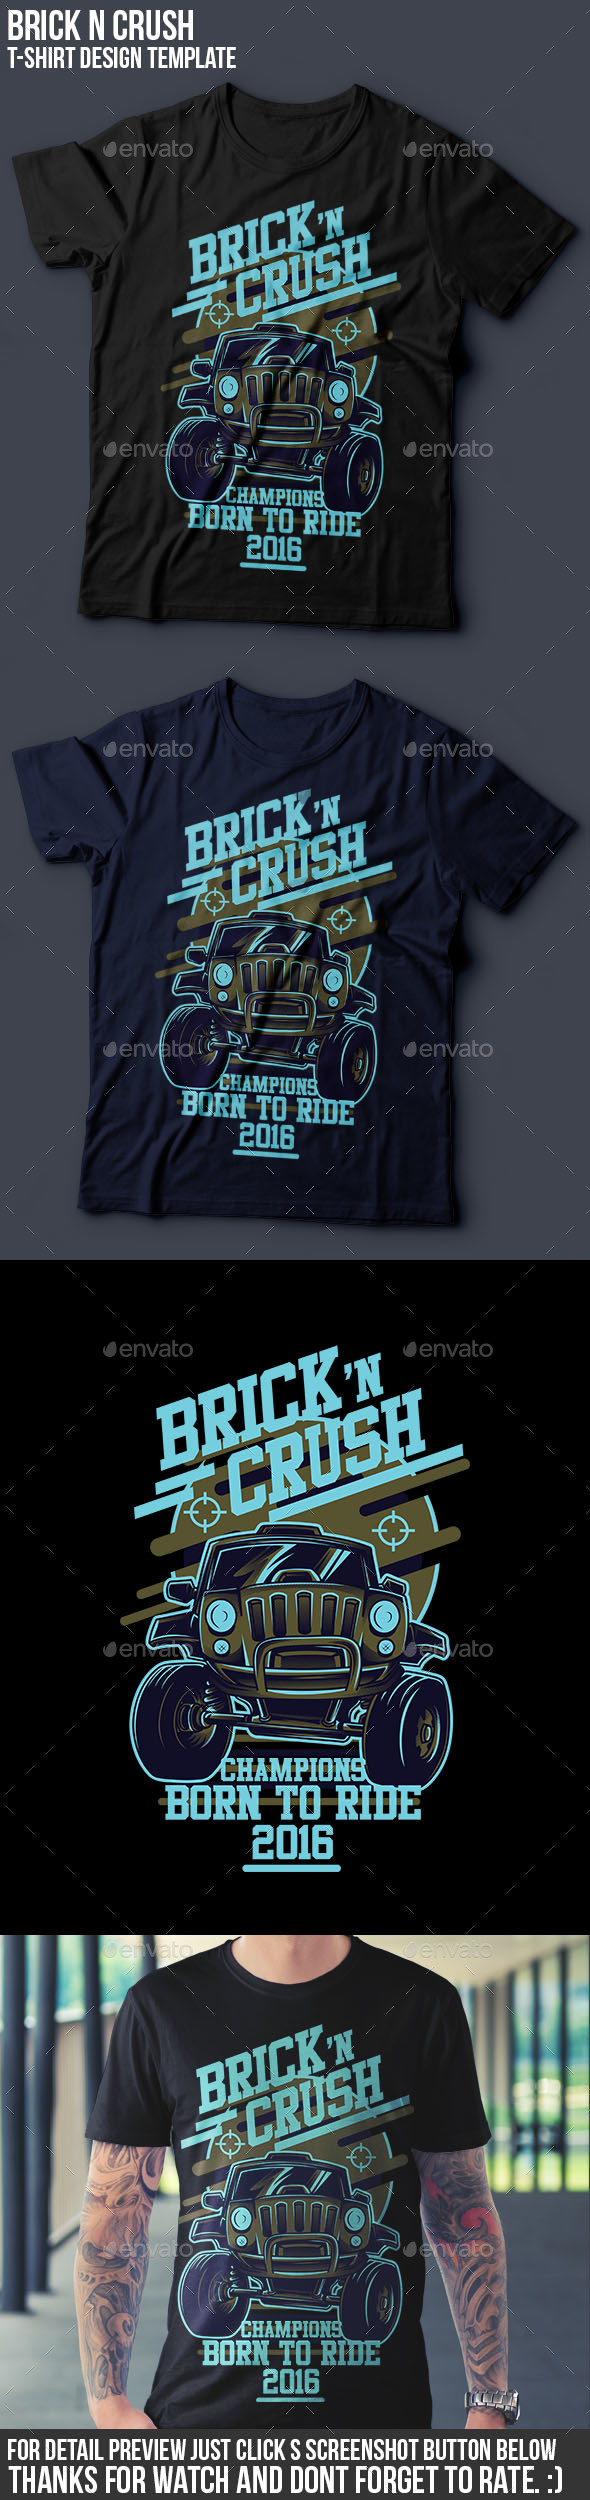 Brick n Crush T-Shirt Design - Events T-Shirts